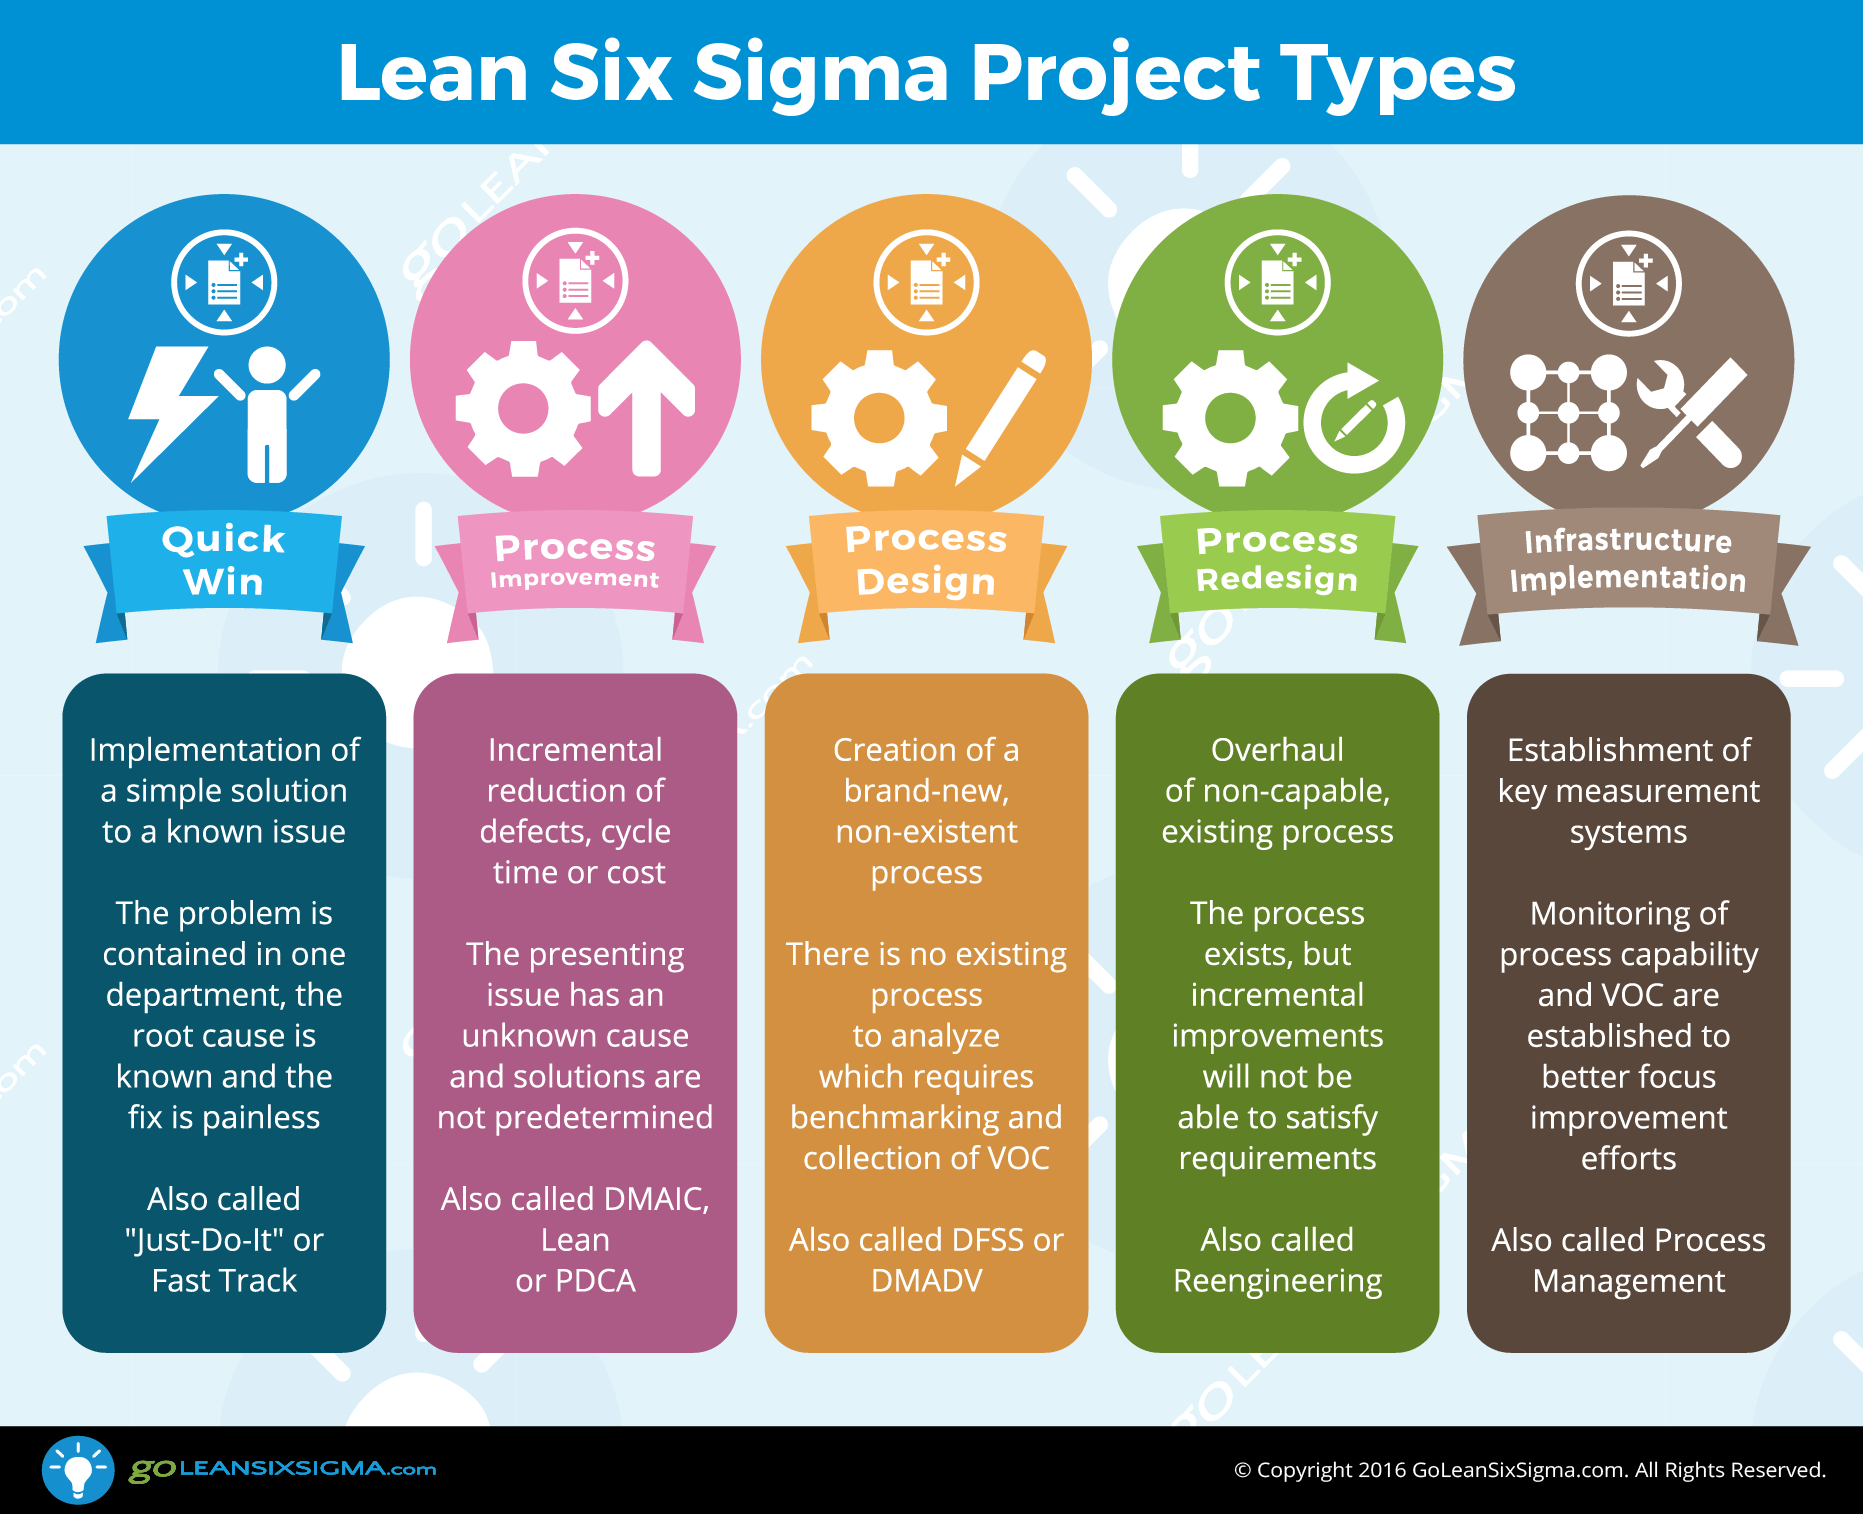 six sigma black belt project template - 5 lean six sigma project types